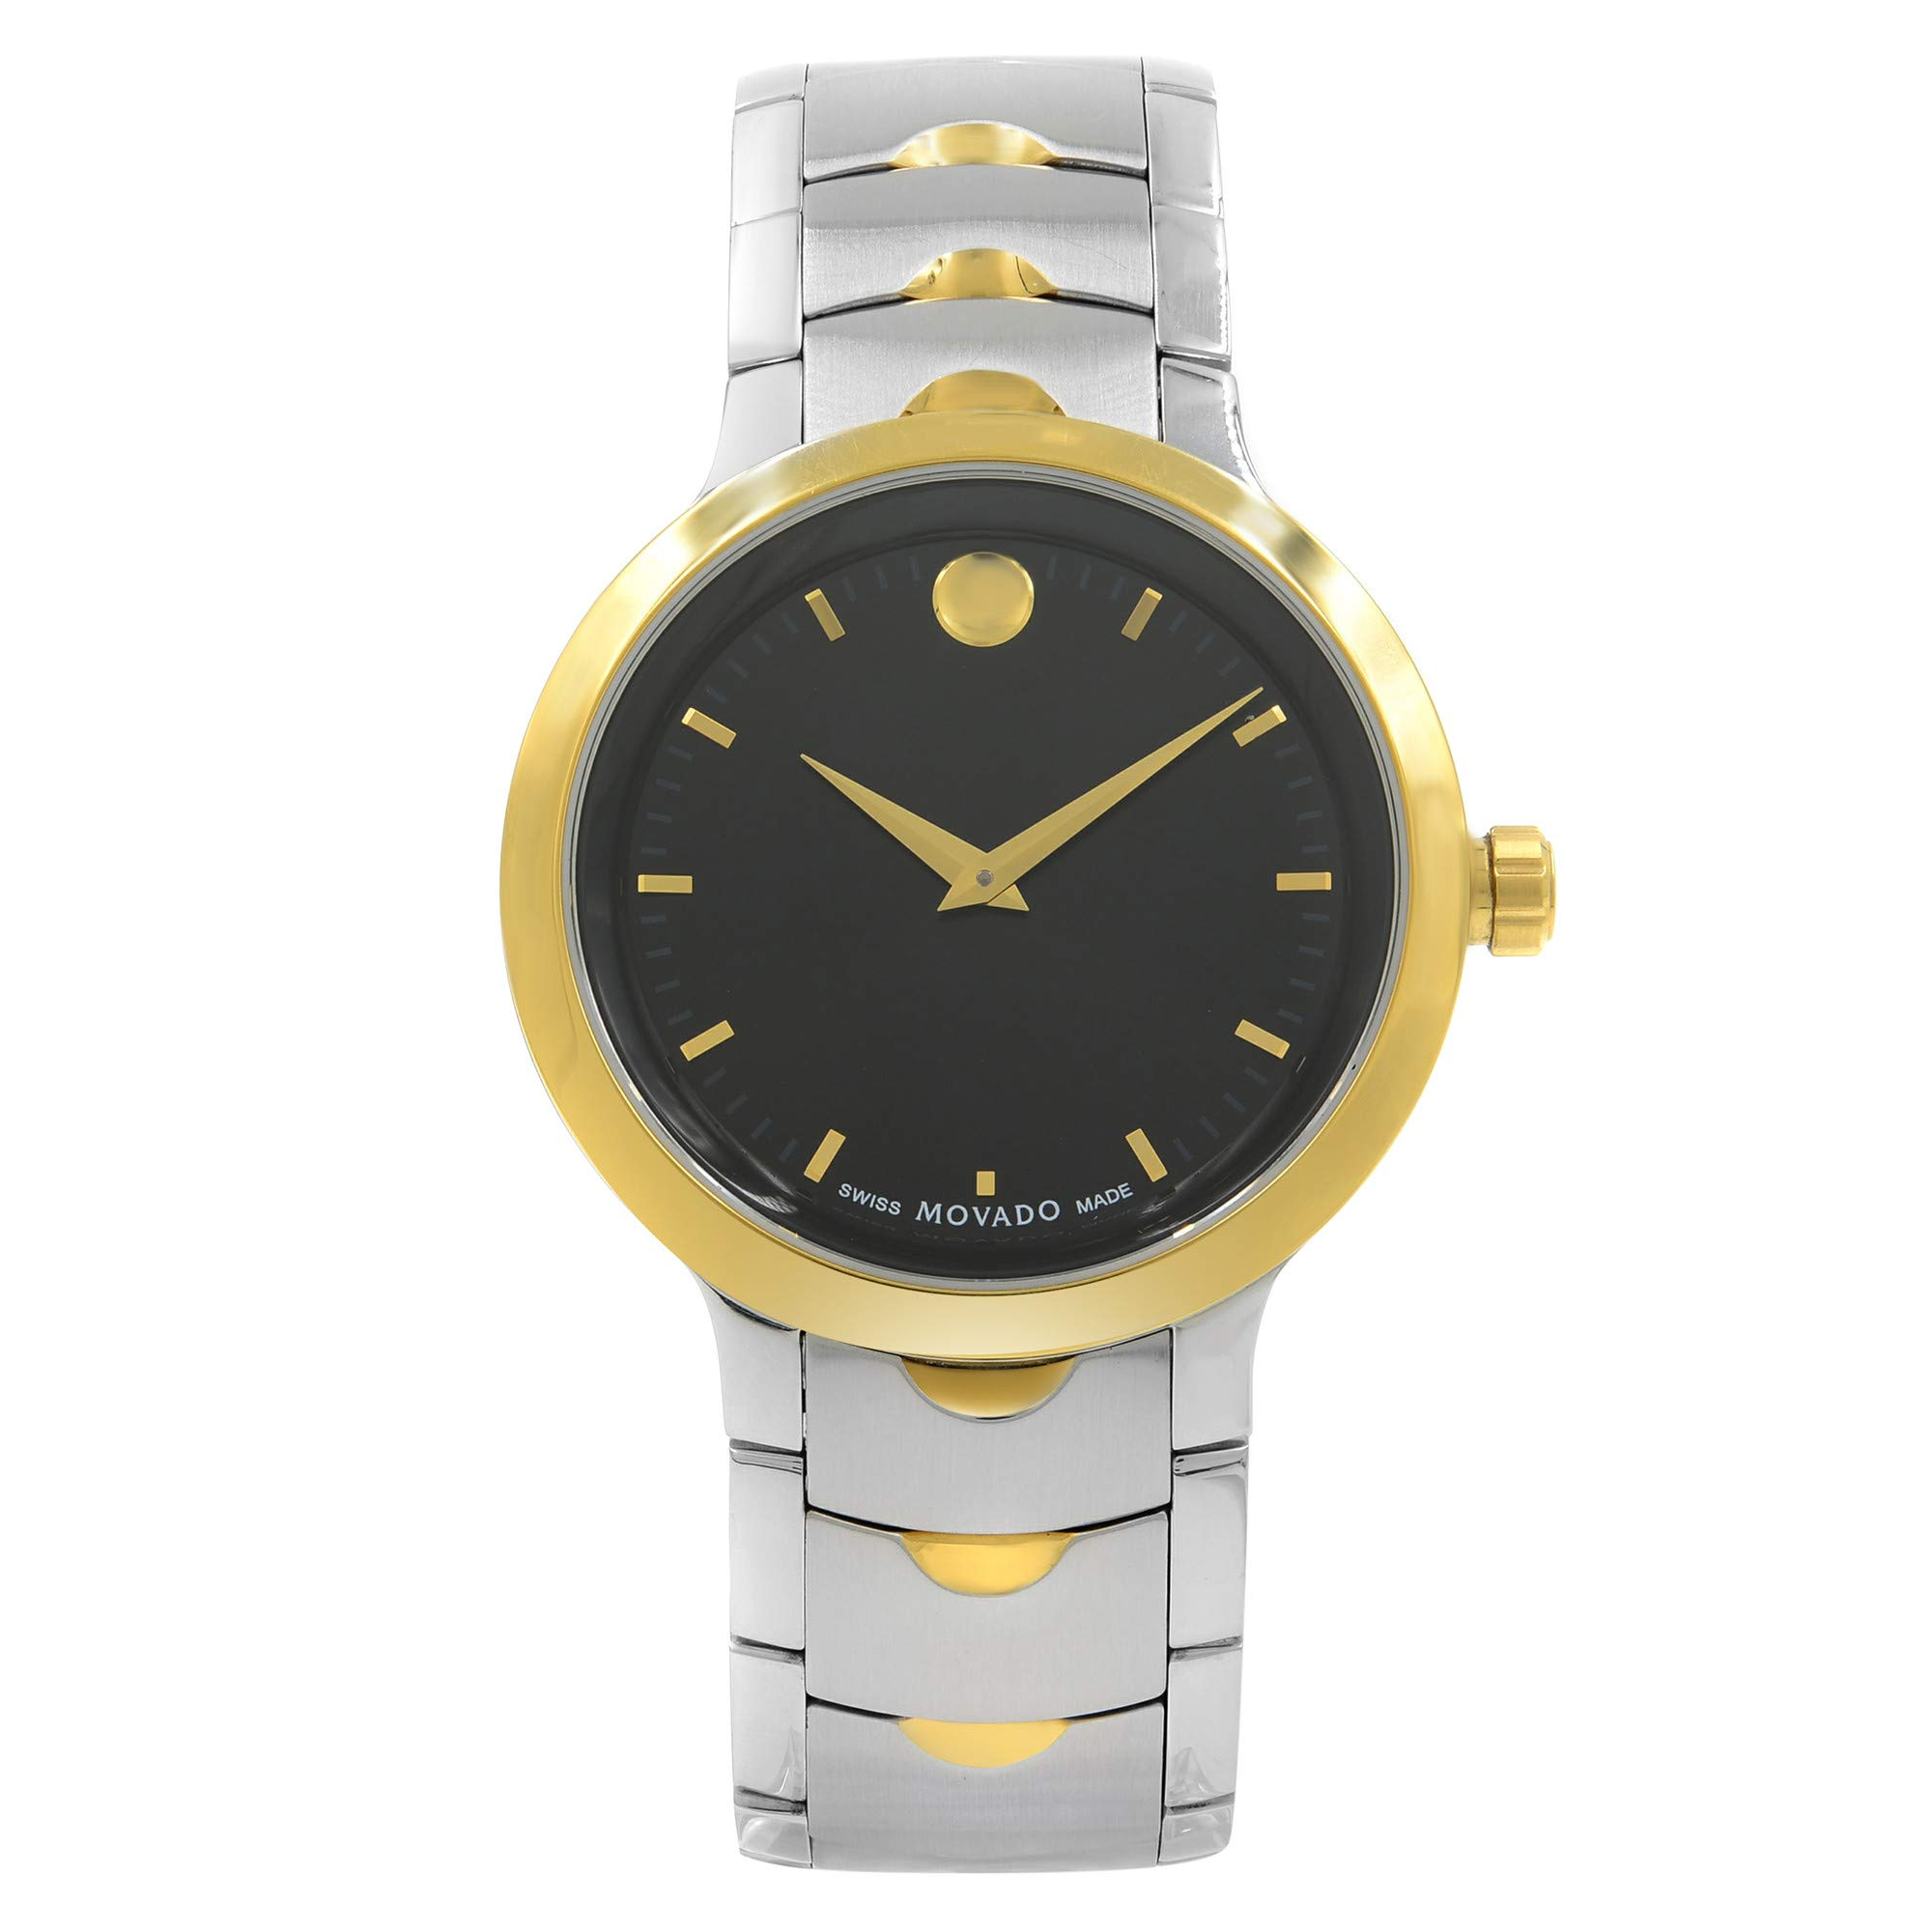 Movado Luno Quartz Male Watch 0607043 (Certified Pre-Owned) by Movado